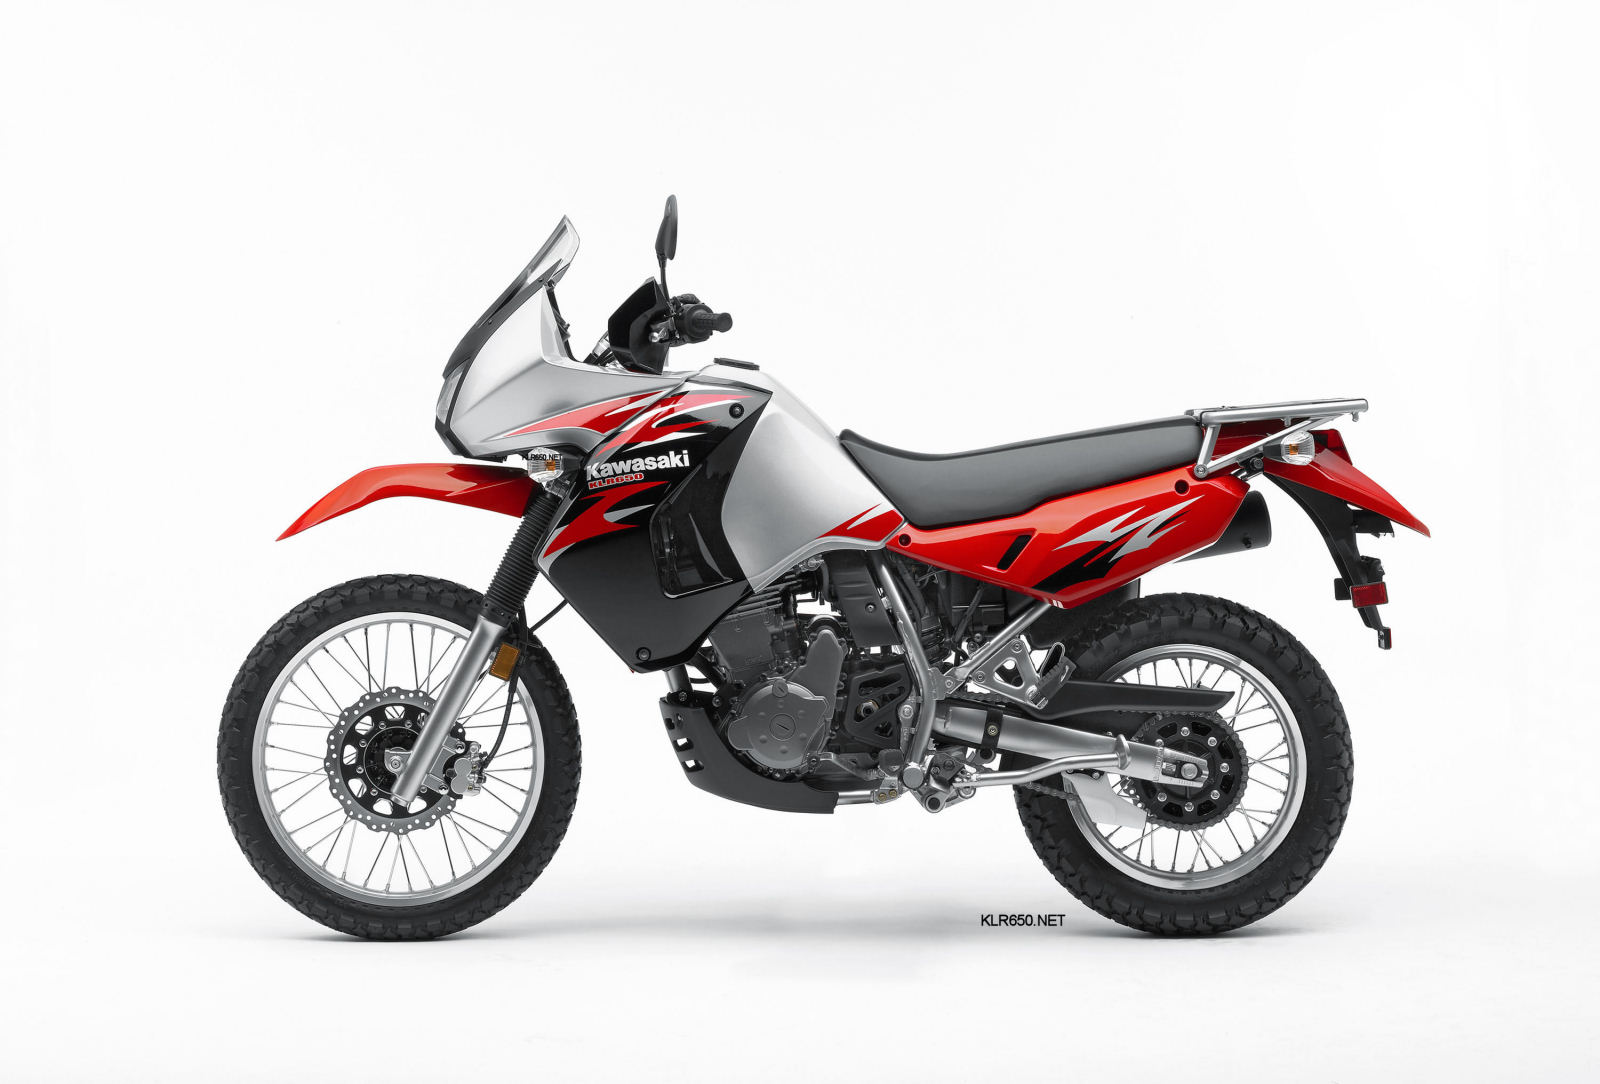 hight resolution of net 2008 2017 klr650 review and specs full kawasaki specifications new edition separate